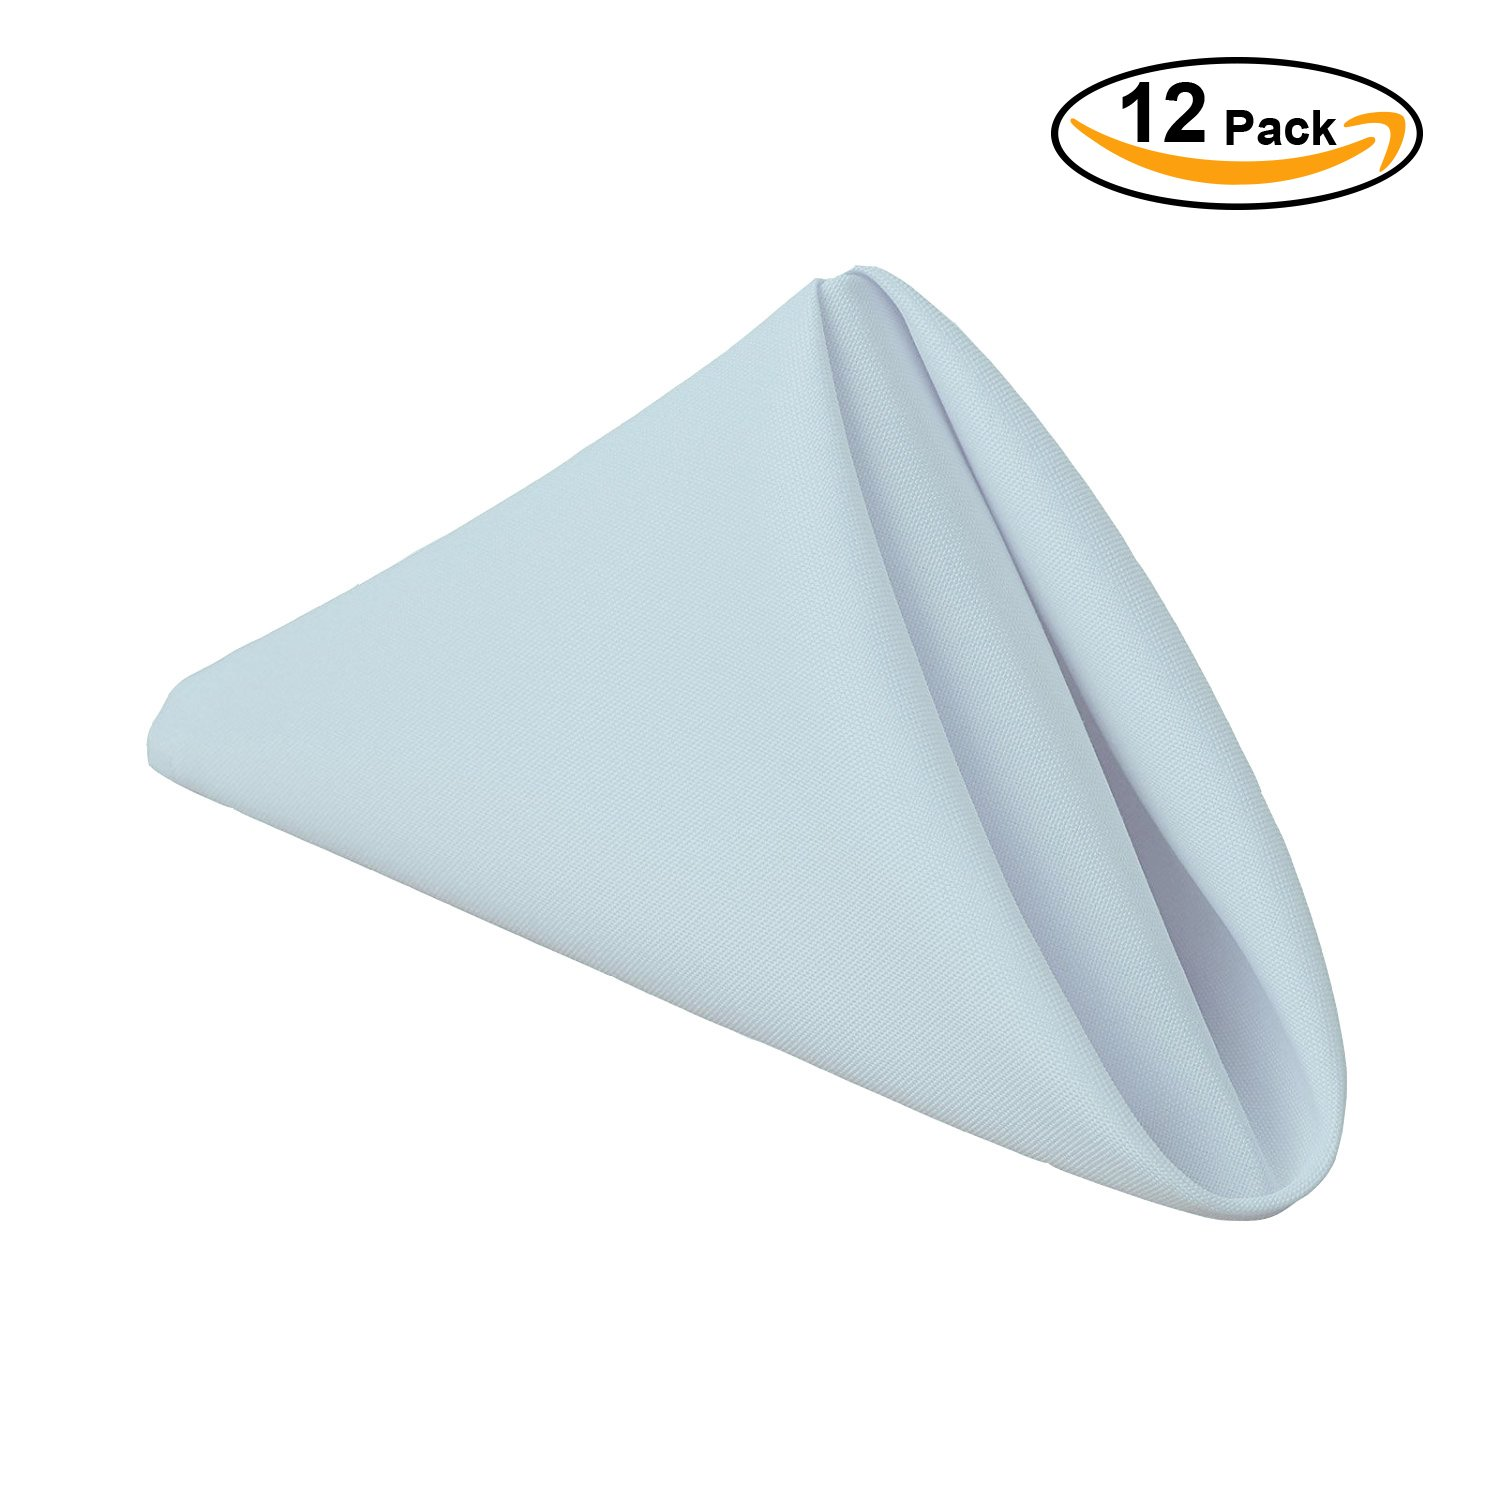 Gee Di Moda Cloth Napkins - 17 x 17 Inch Baby Blue Solid Washable Polyester Dinner Napkins - Set of 12 Napkins with Hemmed Edges - Great for Weddings, Parties, Holiday Dinner & More